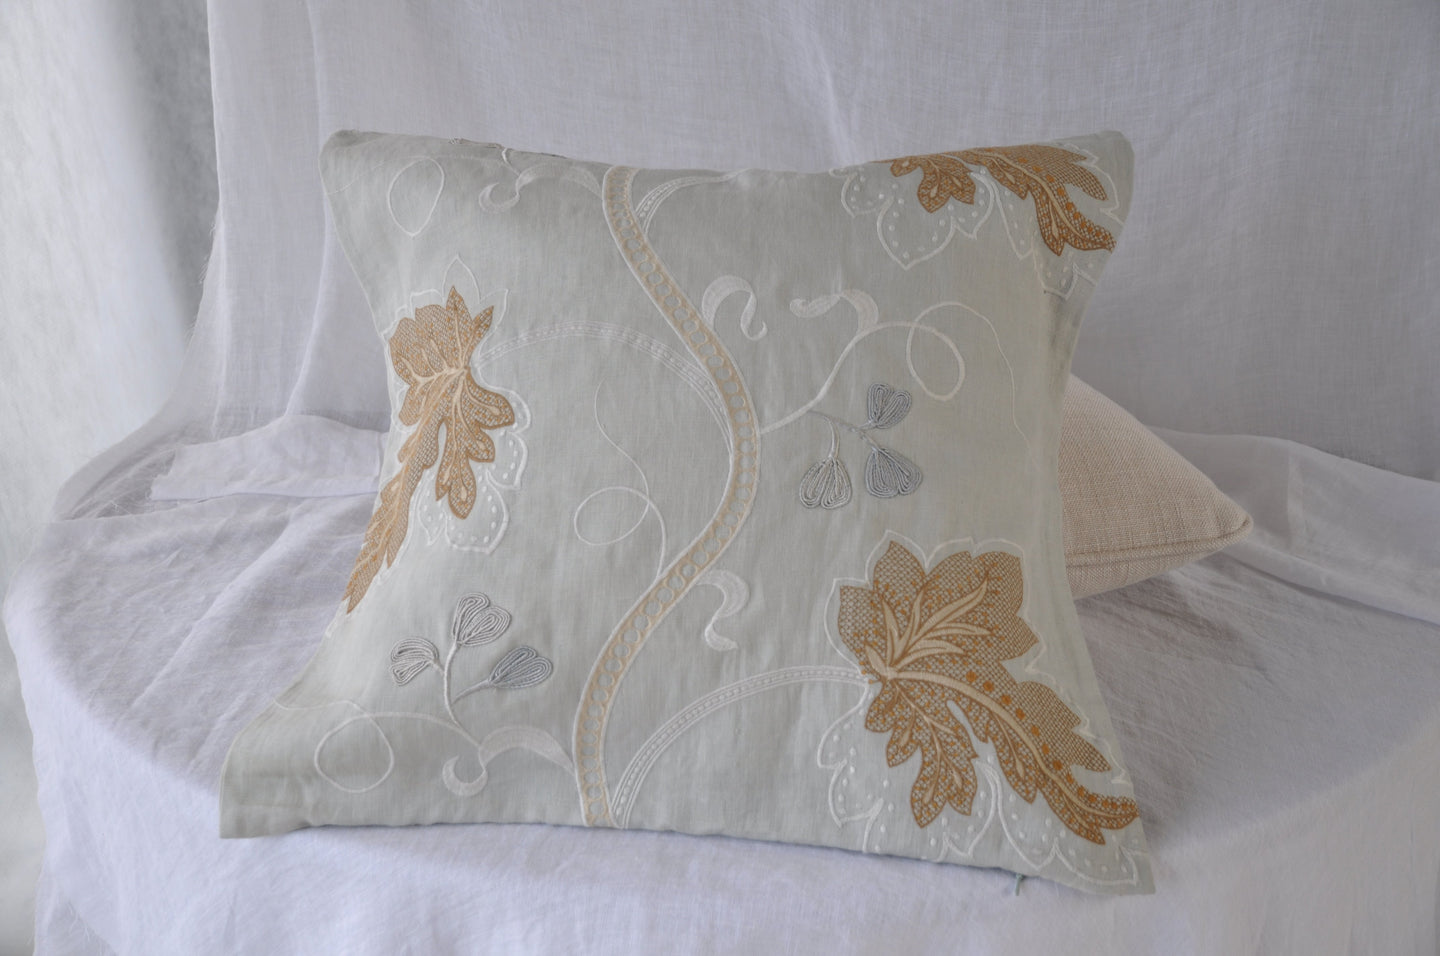 Colefax & Fowler Kashmir Leaf Cushion Cover